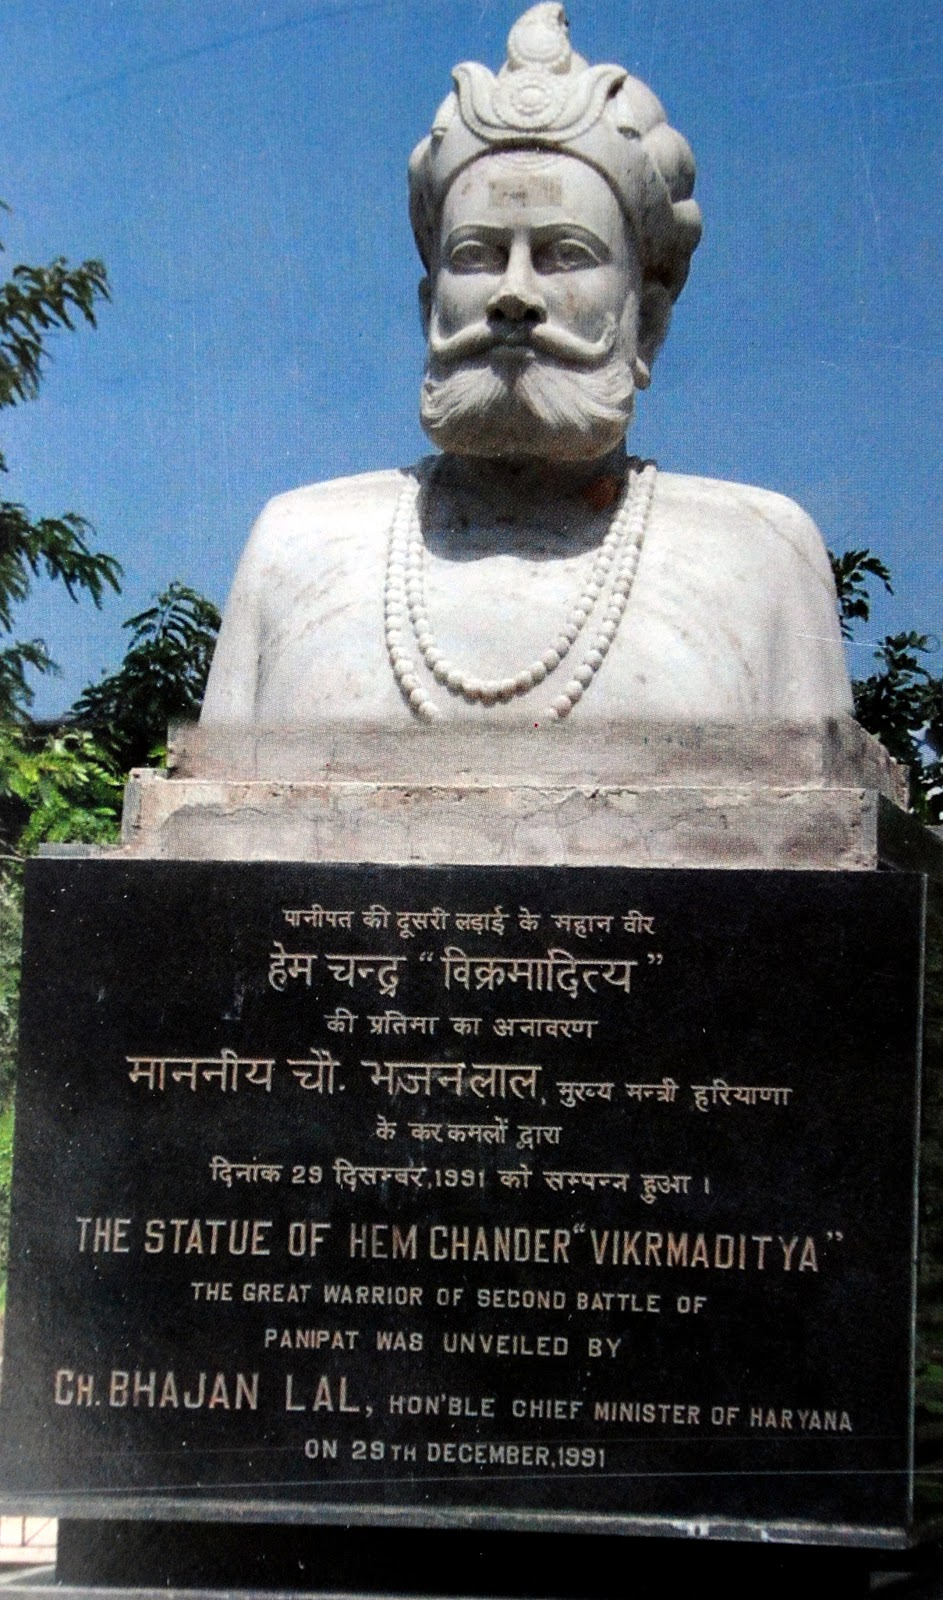 Statue of Hem Chandra Vikramaditya at Panipat, India